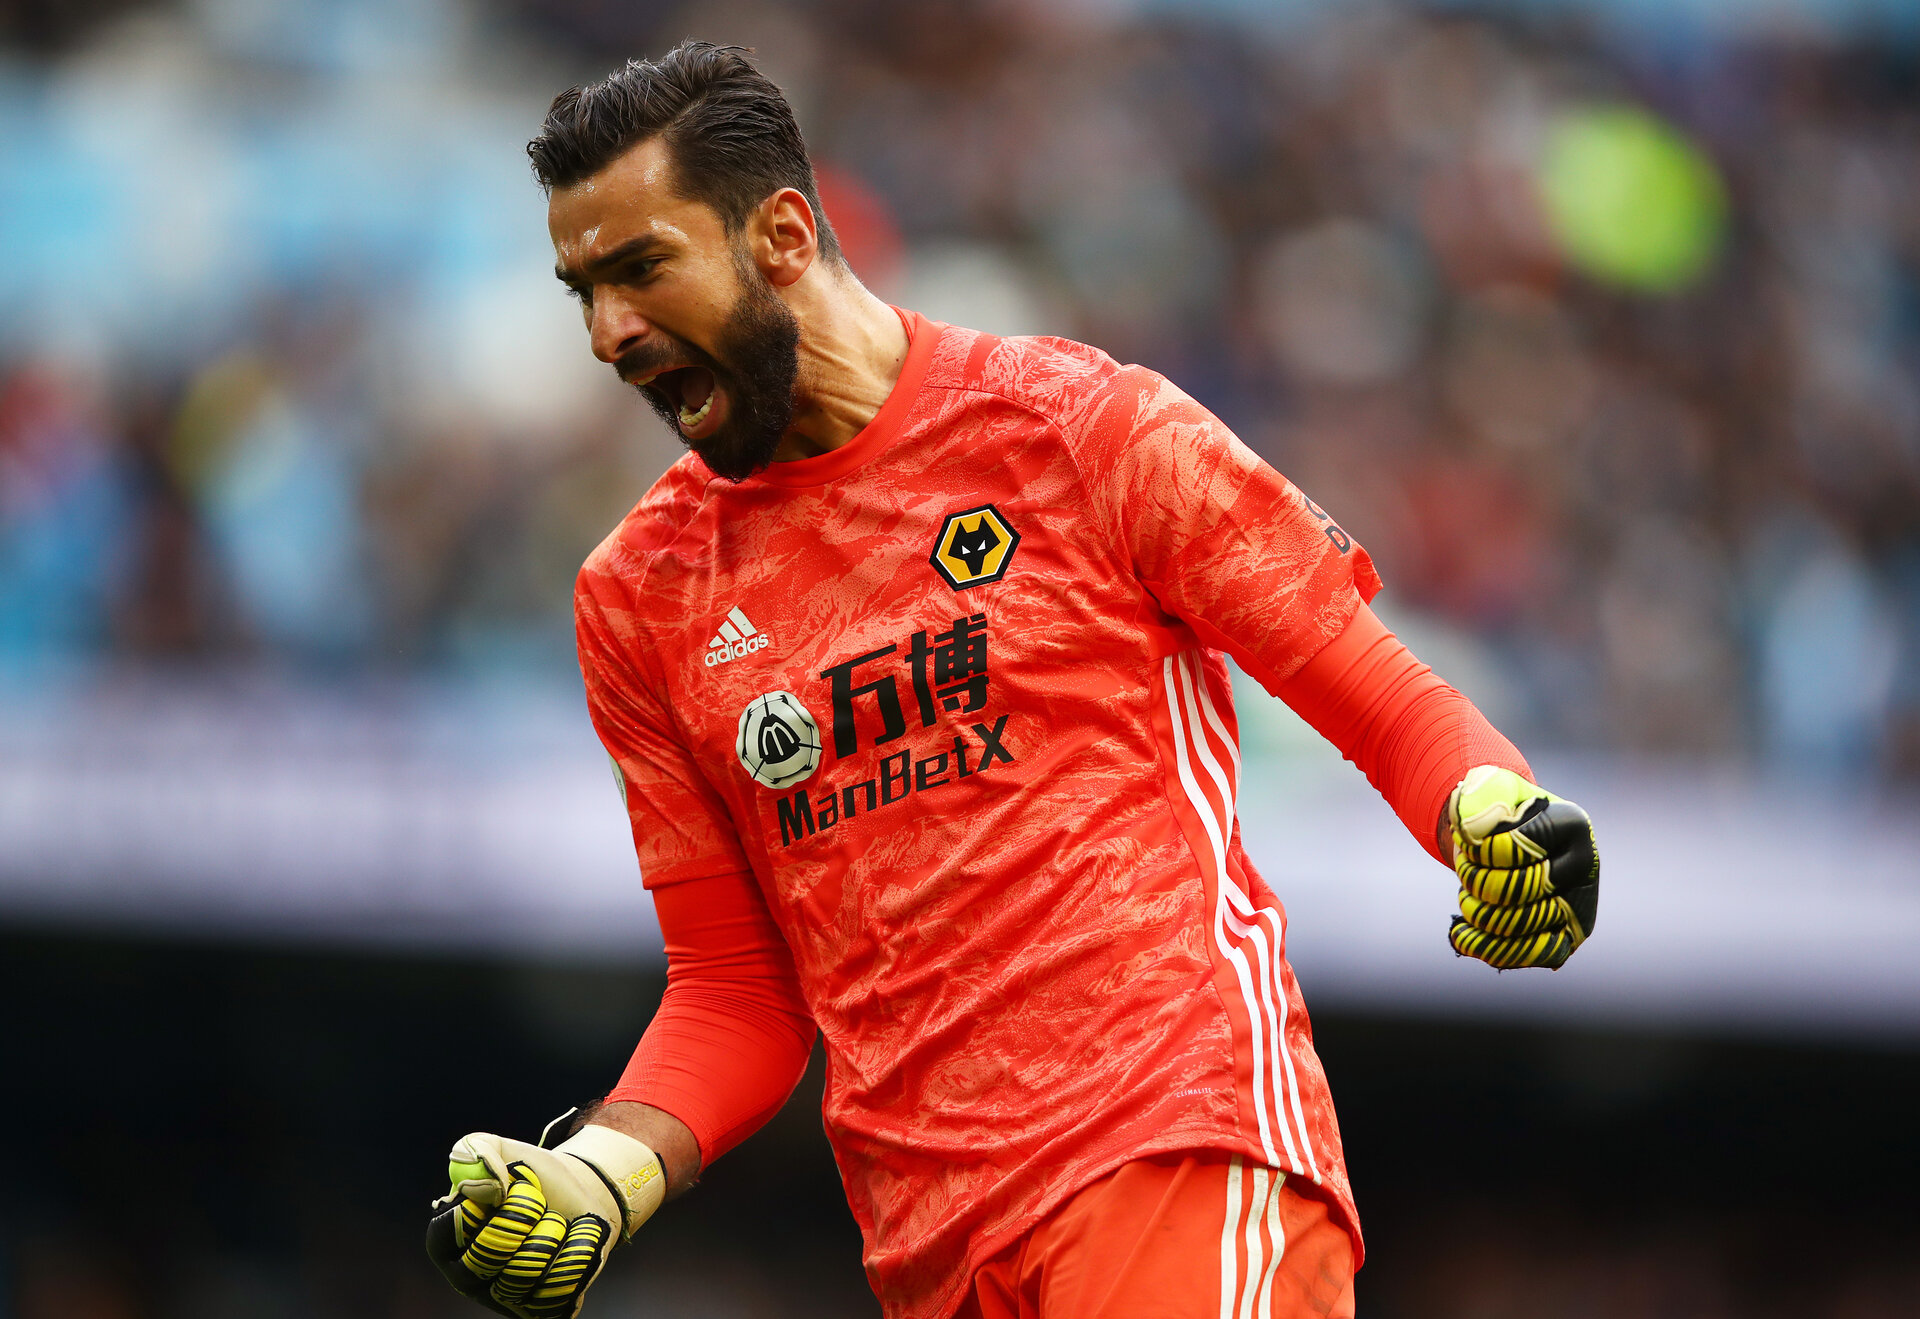 MANCHESTER, ENGLAND - OCTOBER 06: Rui Patricio of Wolverhampton Wanderers celebrates after their teams victory in the Premier League match between Manchester City and Wolverhampton Wanderers at Etihad Stadium on October 06, 2019 in Manchester, United Kingdom. (Photo by Clive Brunskill/Getty Images)